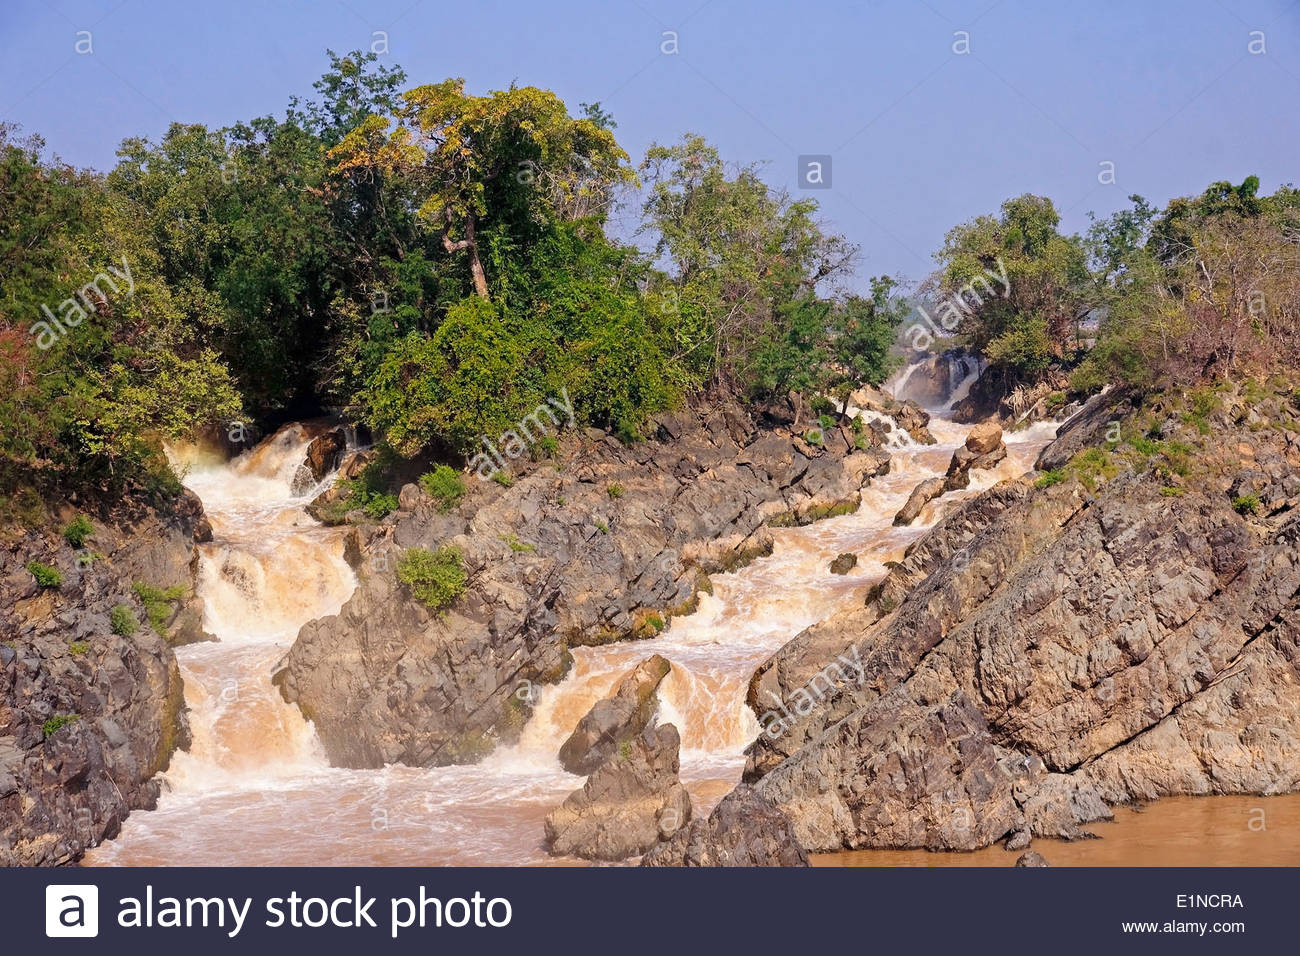 Waterfall on the Mekong River in Laos - Stock Image